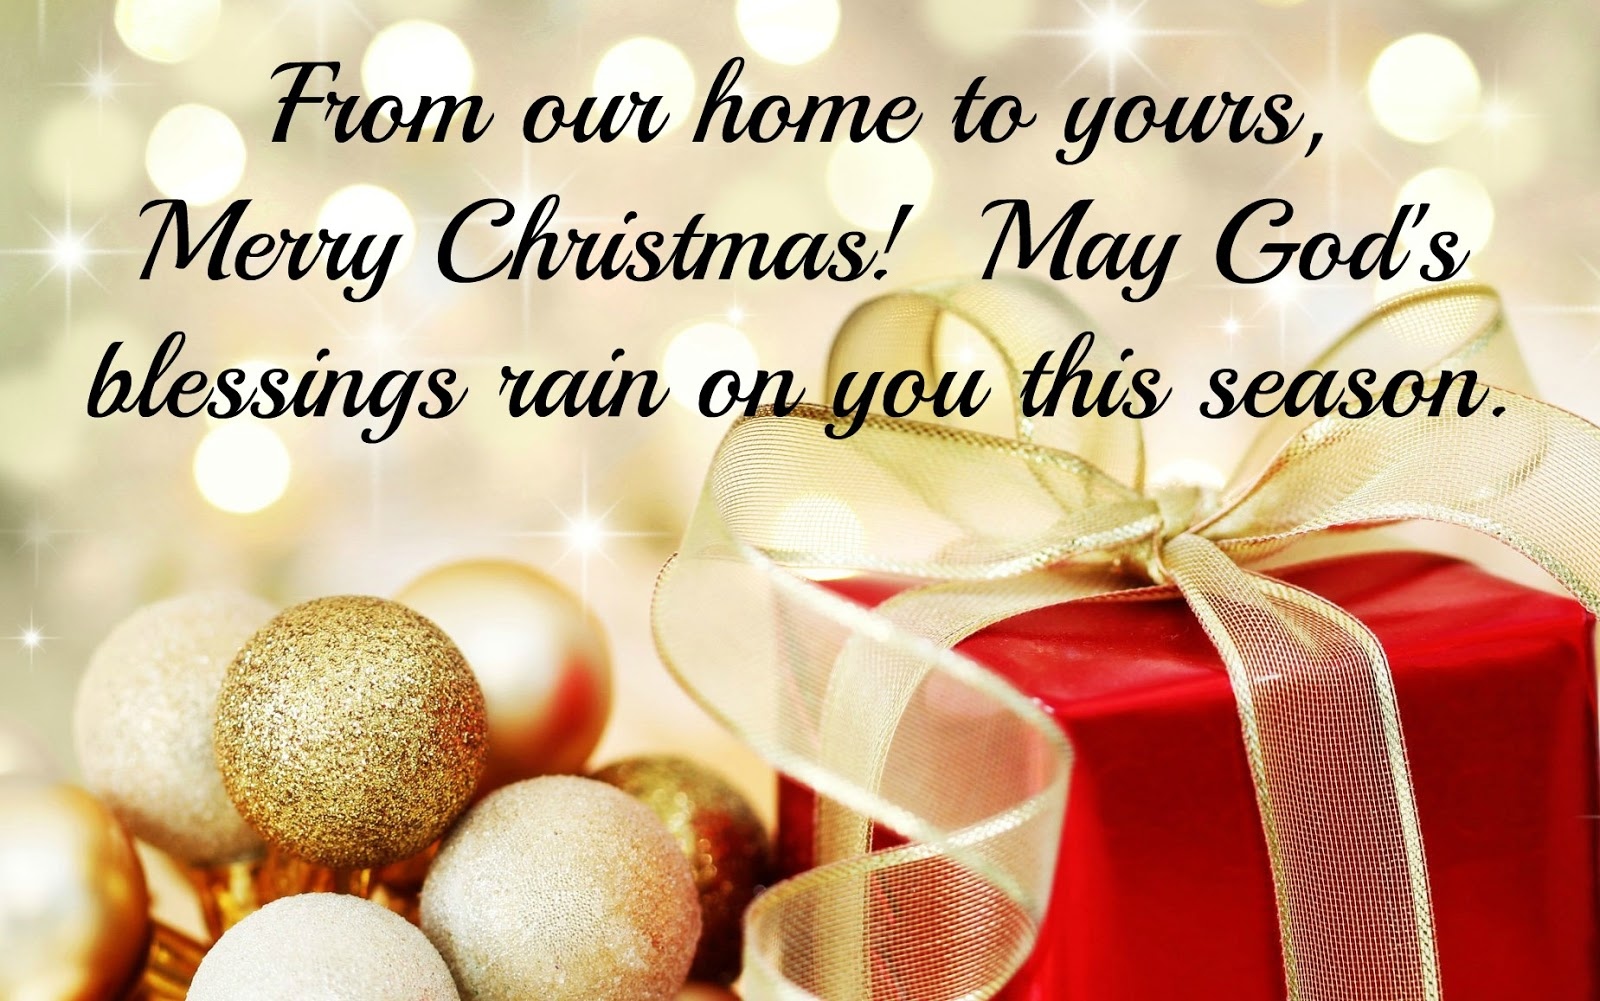 1000 Merry Christmas Wishes Quotes On Pinterest: Pinterest Holiday Quotes. QuotesGram